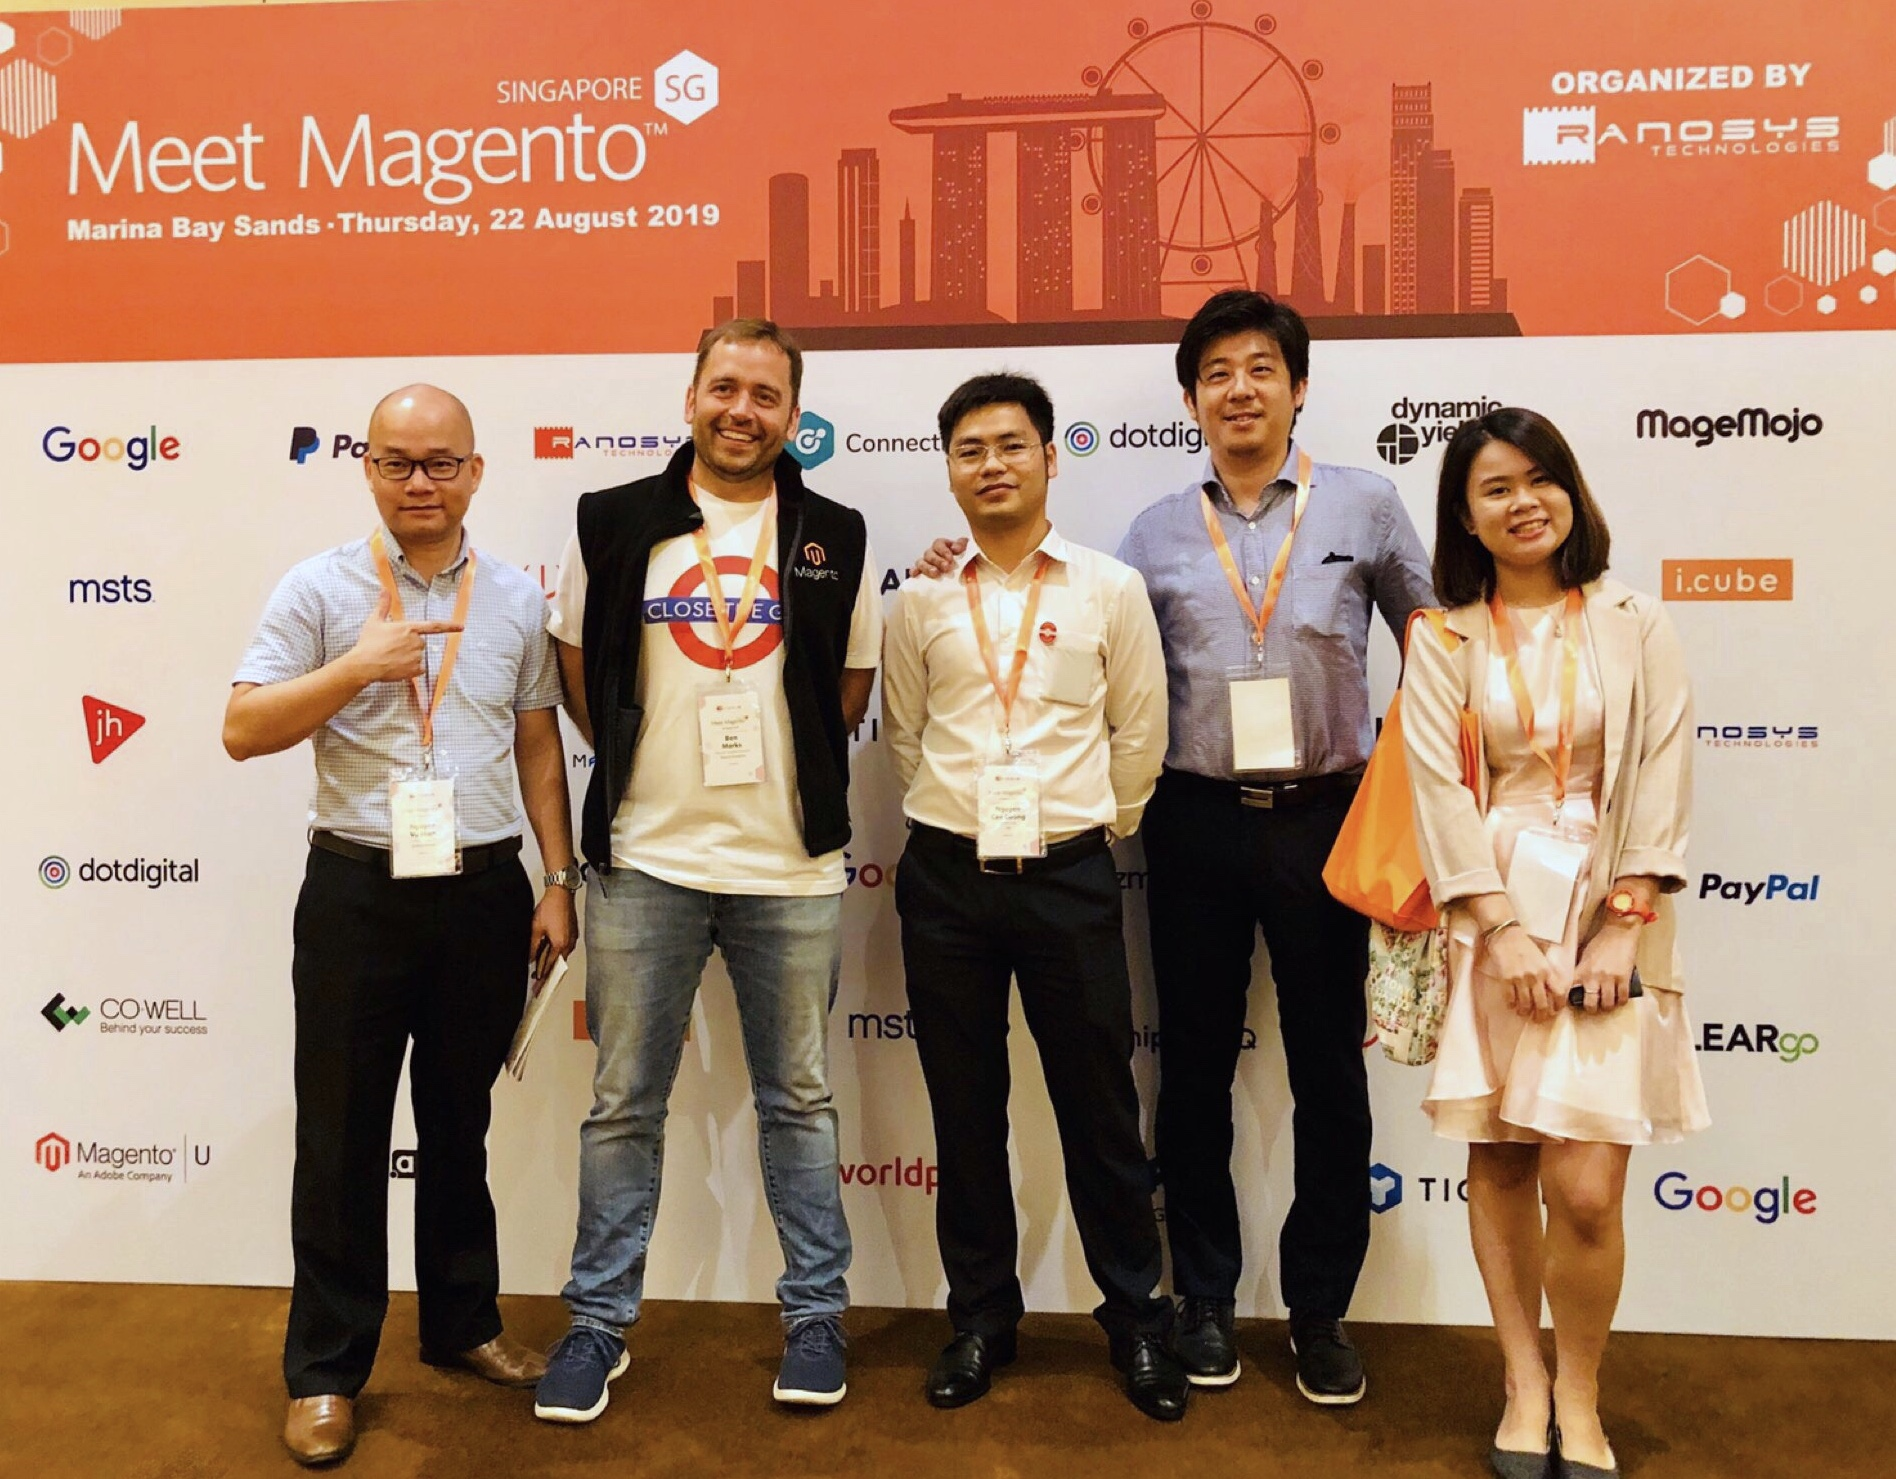 CO-WELL ASIA AT  MEET MAGENTO SINGAPORE 2019